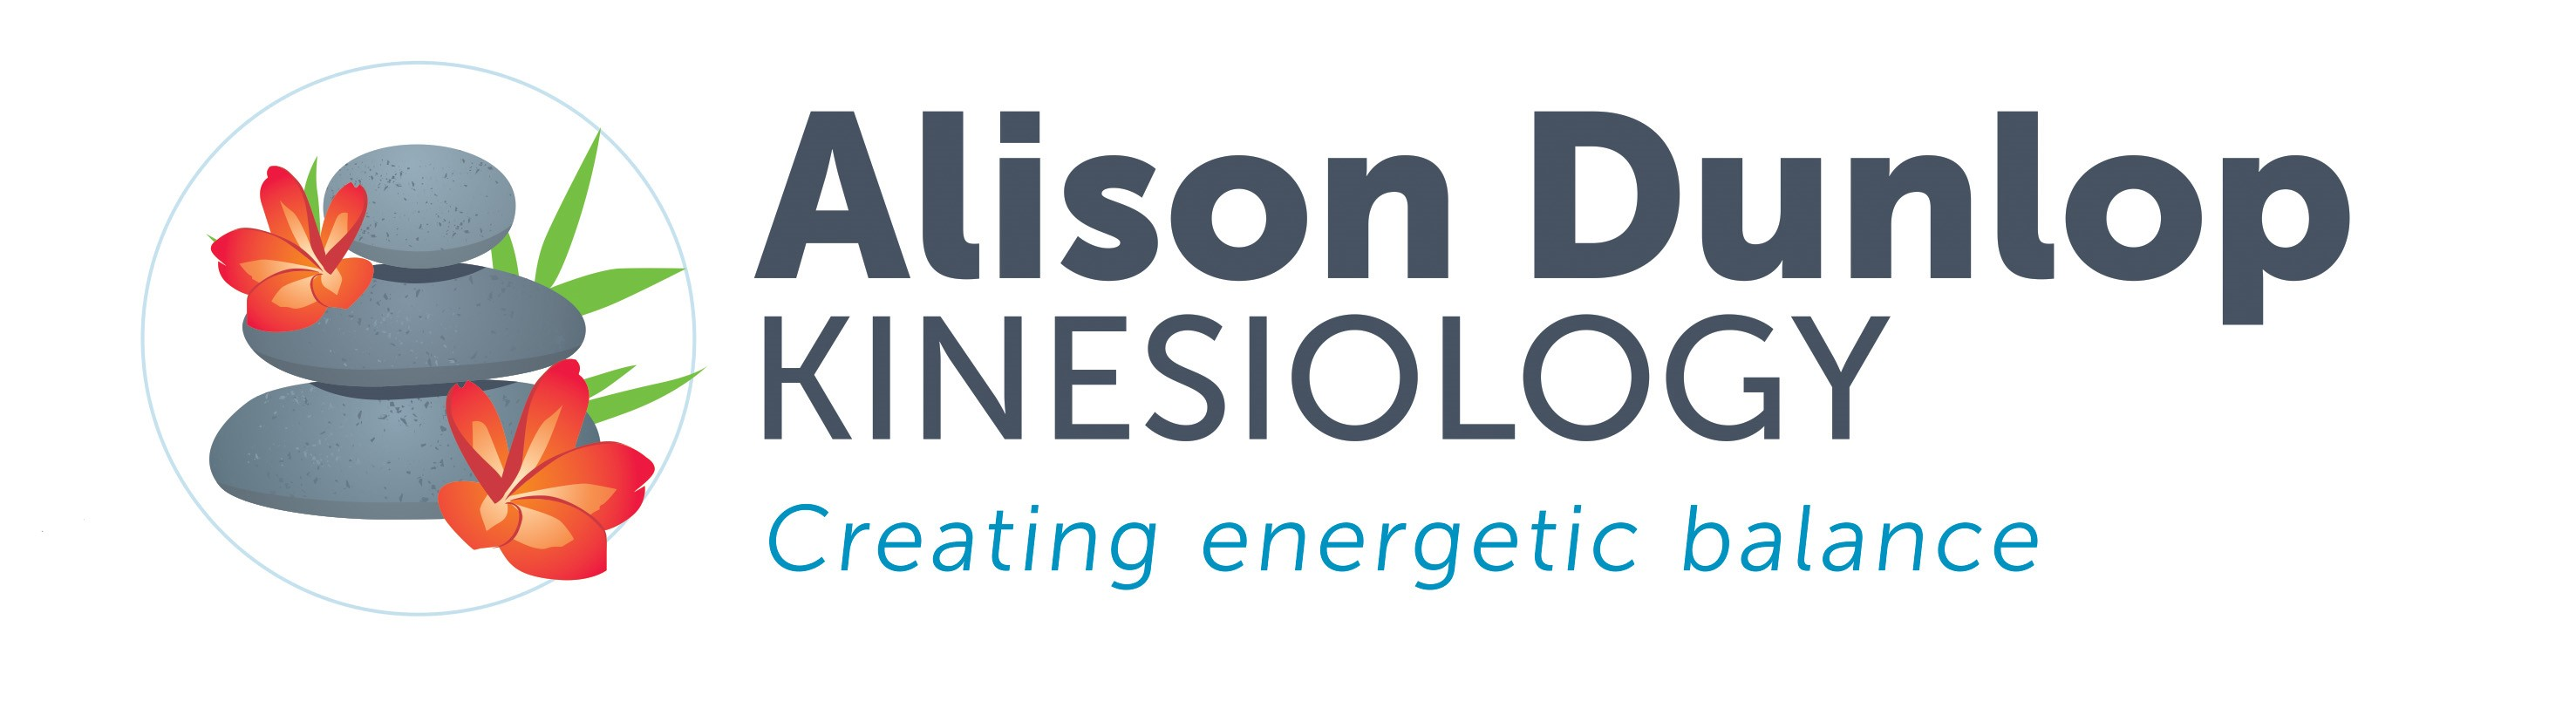 Alison Dunlop Kinesiology